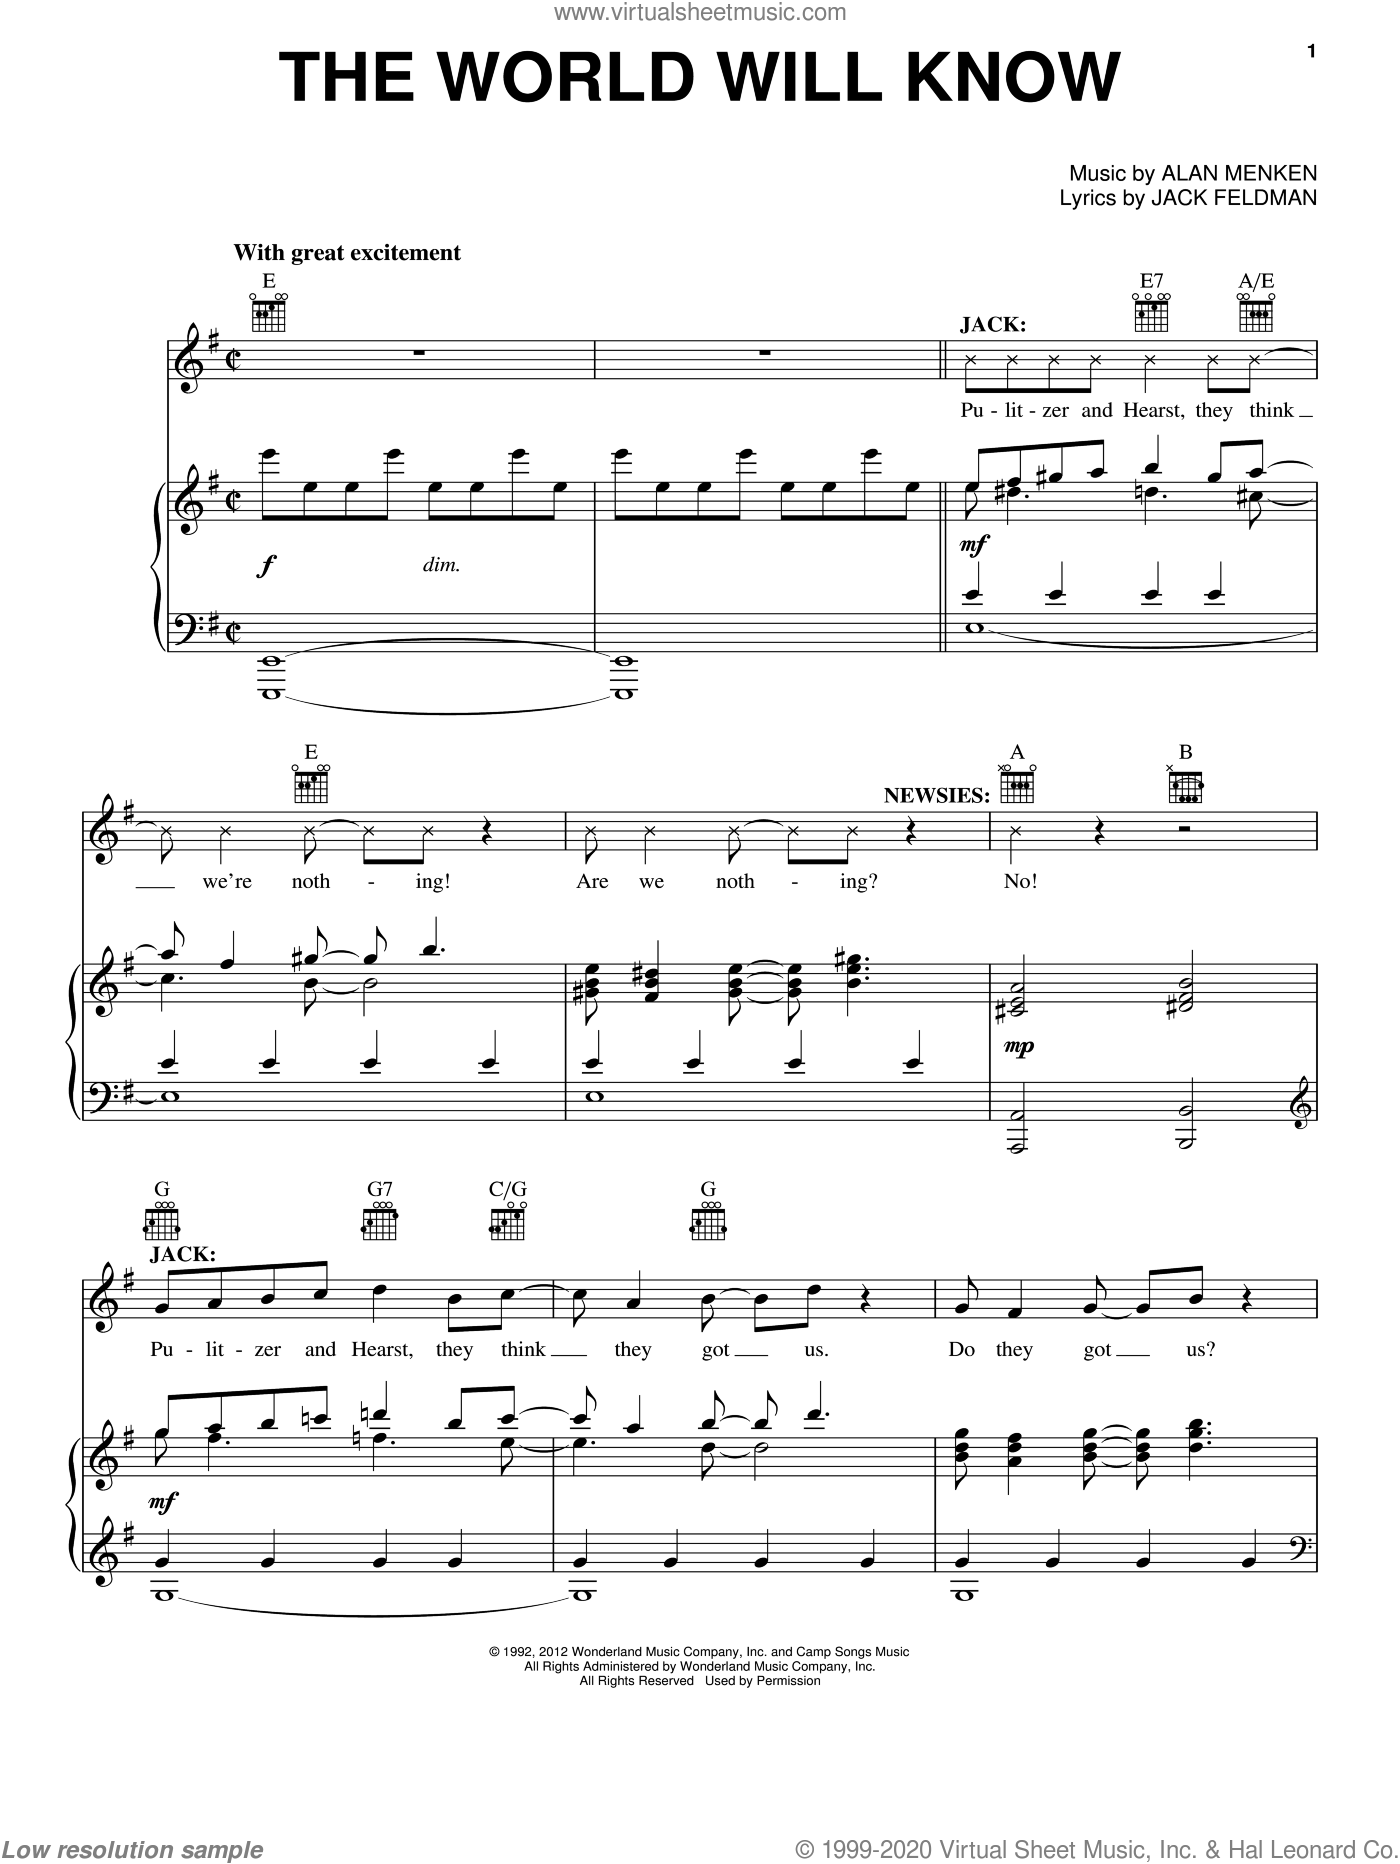 The World Will Know sheet music for voice, piano or guitar by Alan Menken